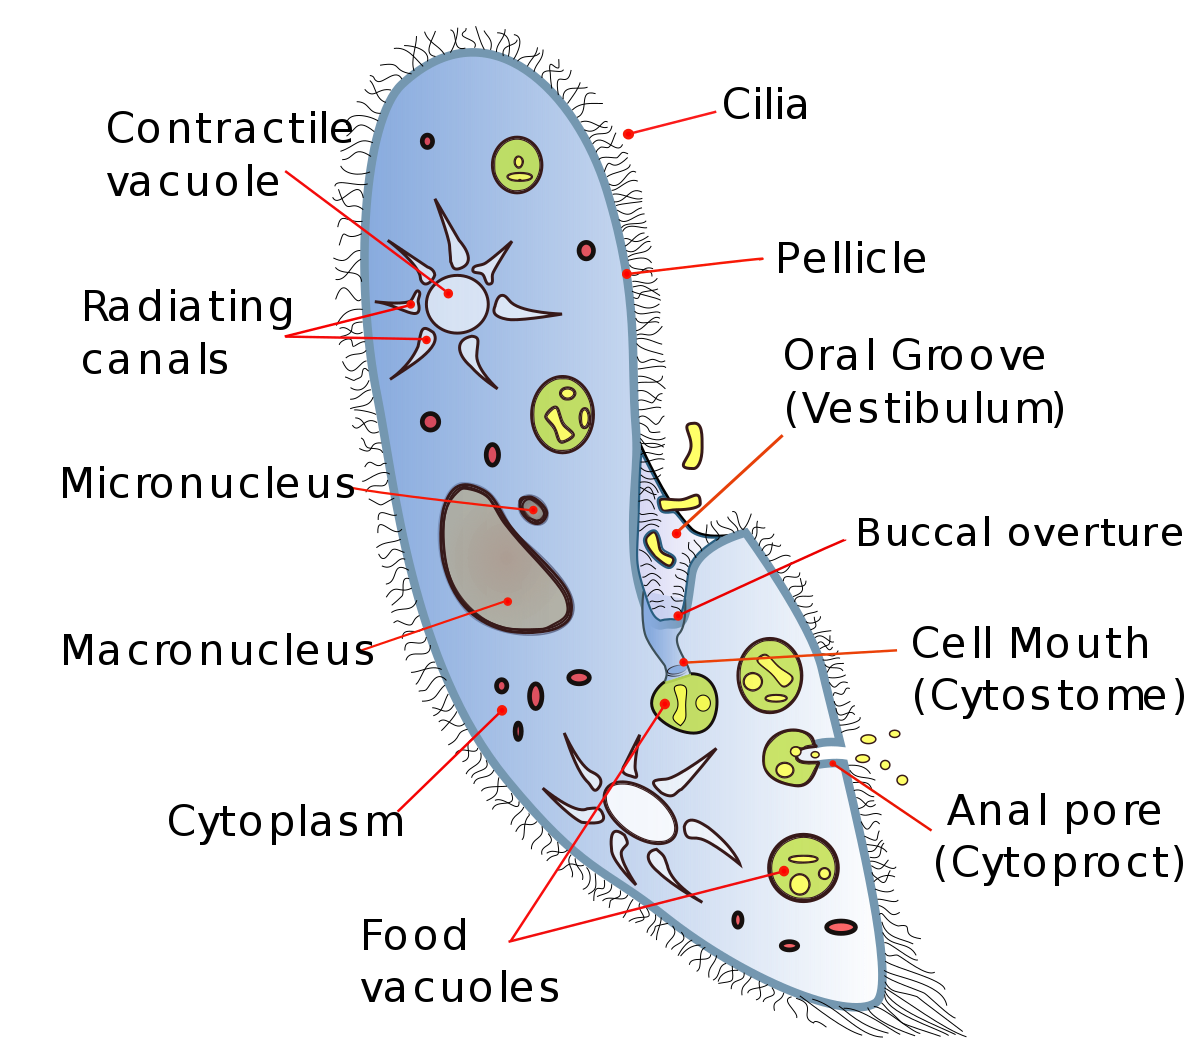 Paramecium drawing paramoecium. Cytostome wikipedia